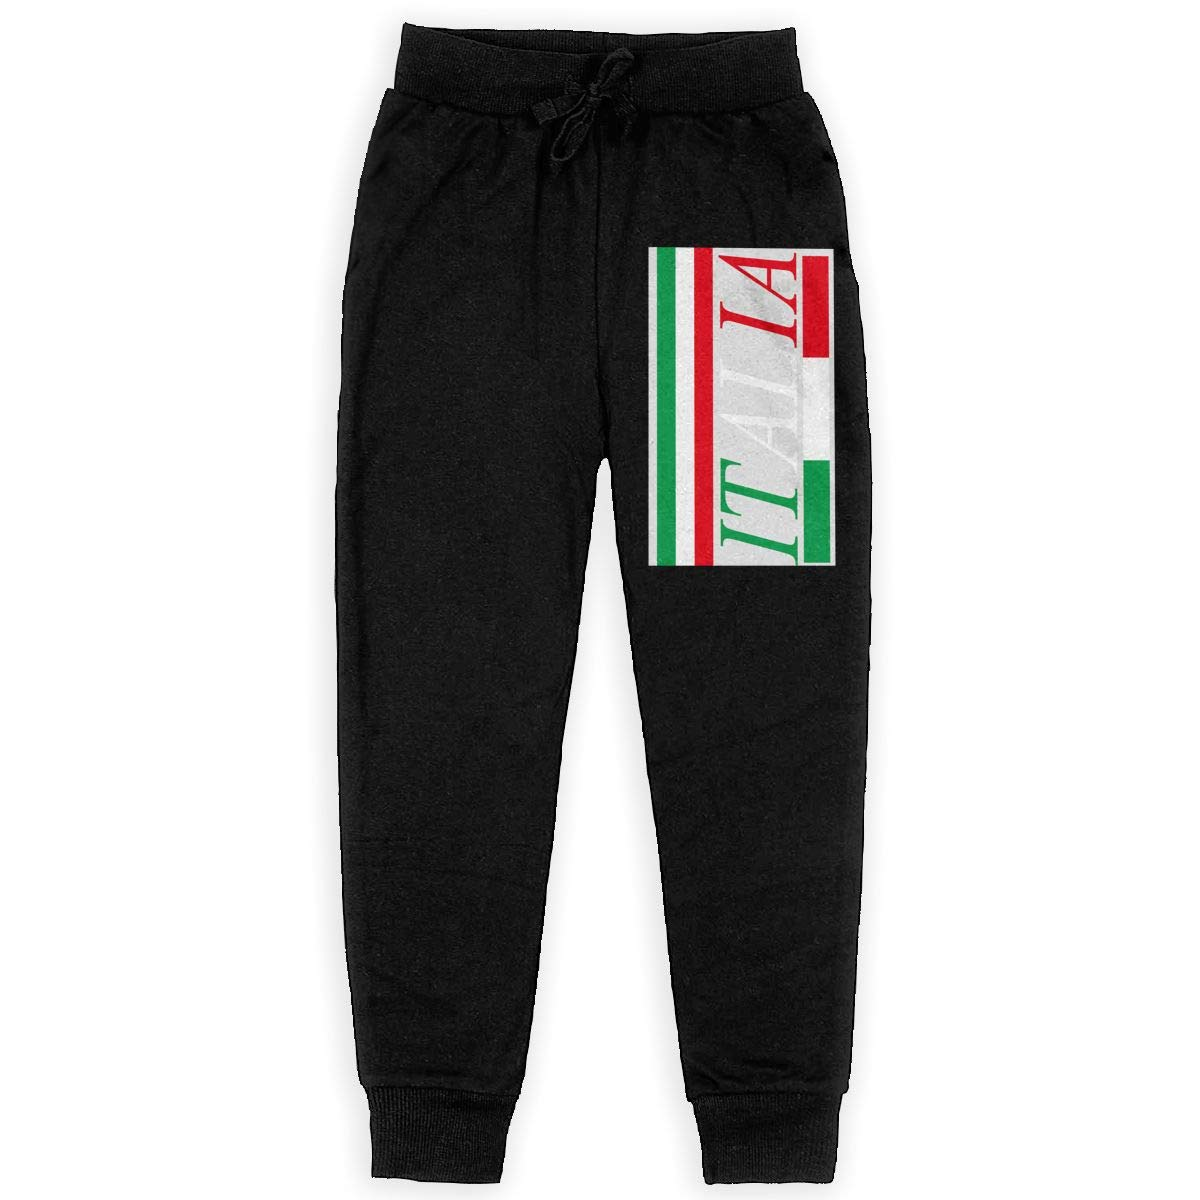 XinT Italia Italy Italian Flag Teenagers Boys Sweatpants Fashion Pants with Pockets